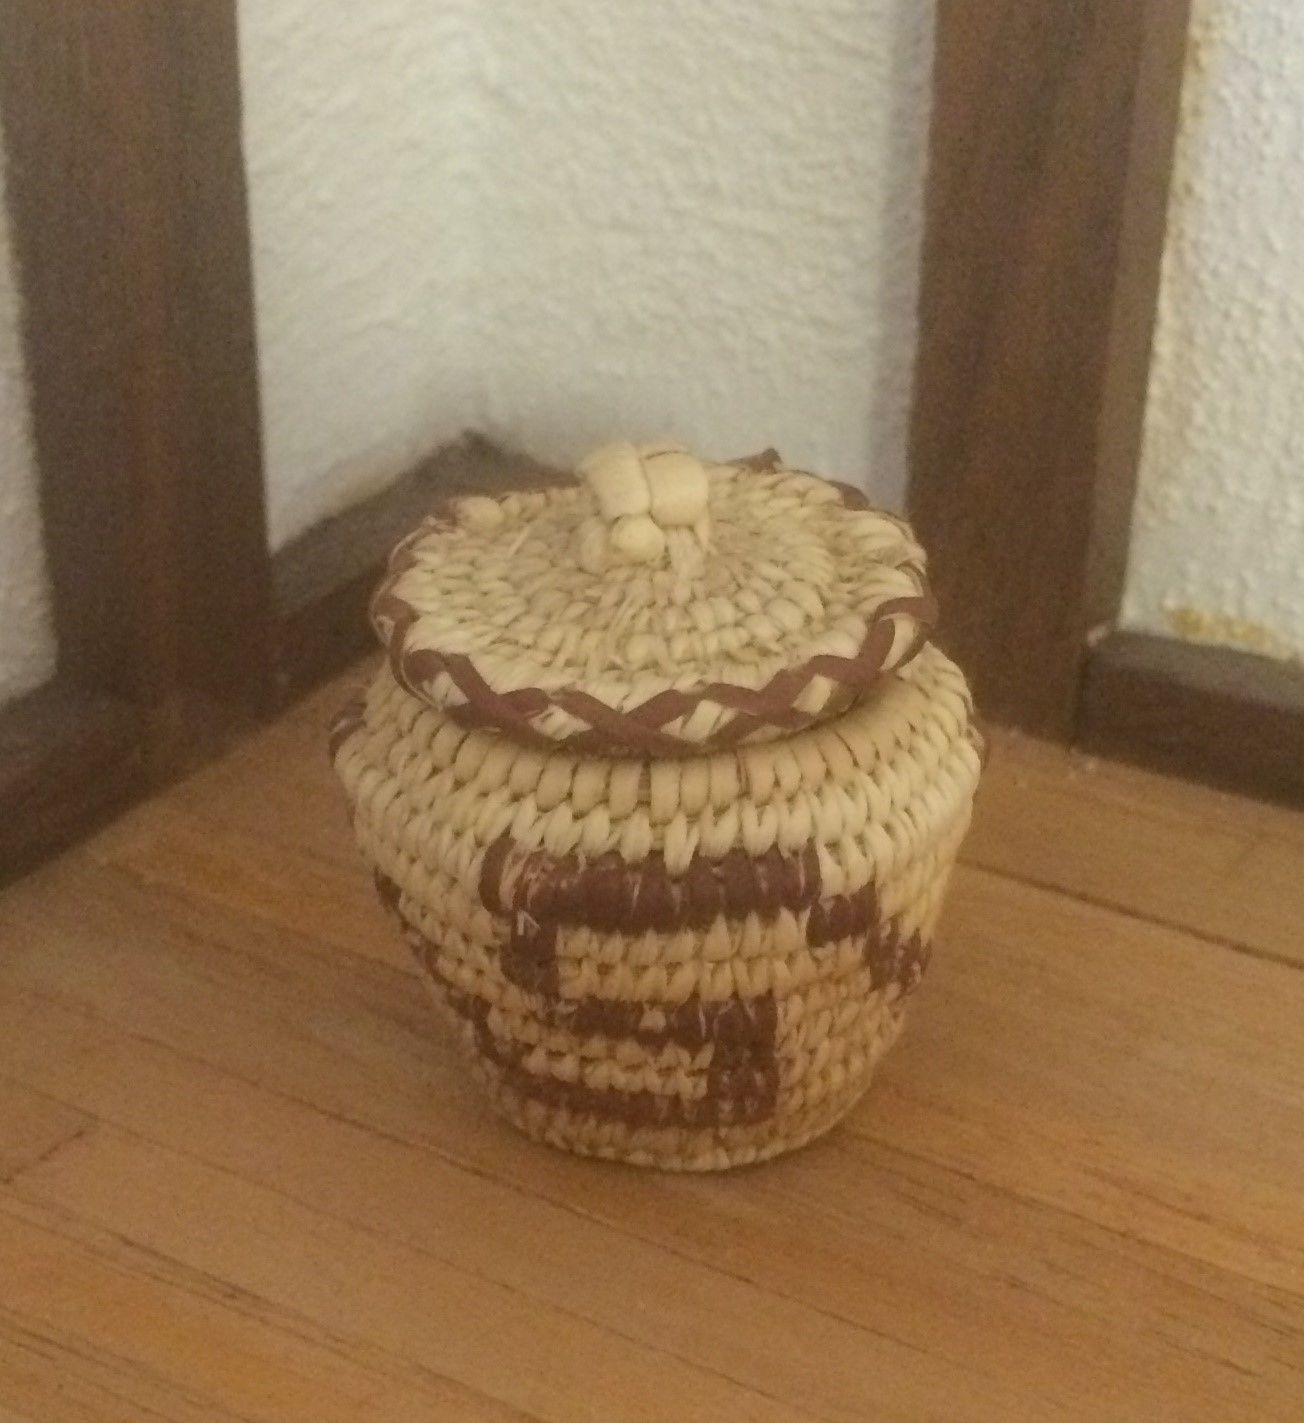 Woven Basket Pinterest : Dollhouse miniature mary thomas signed woven wicker basket